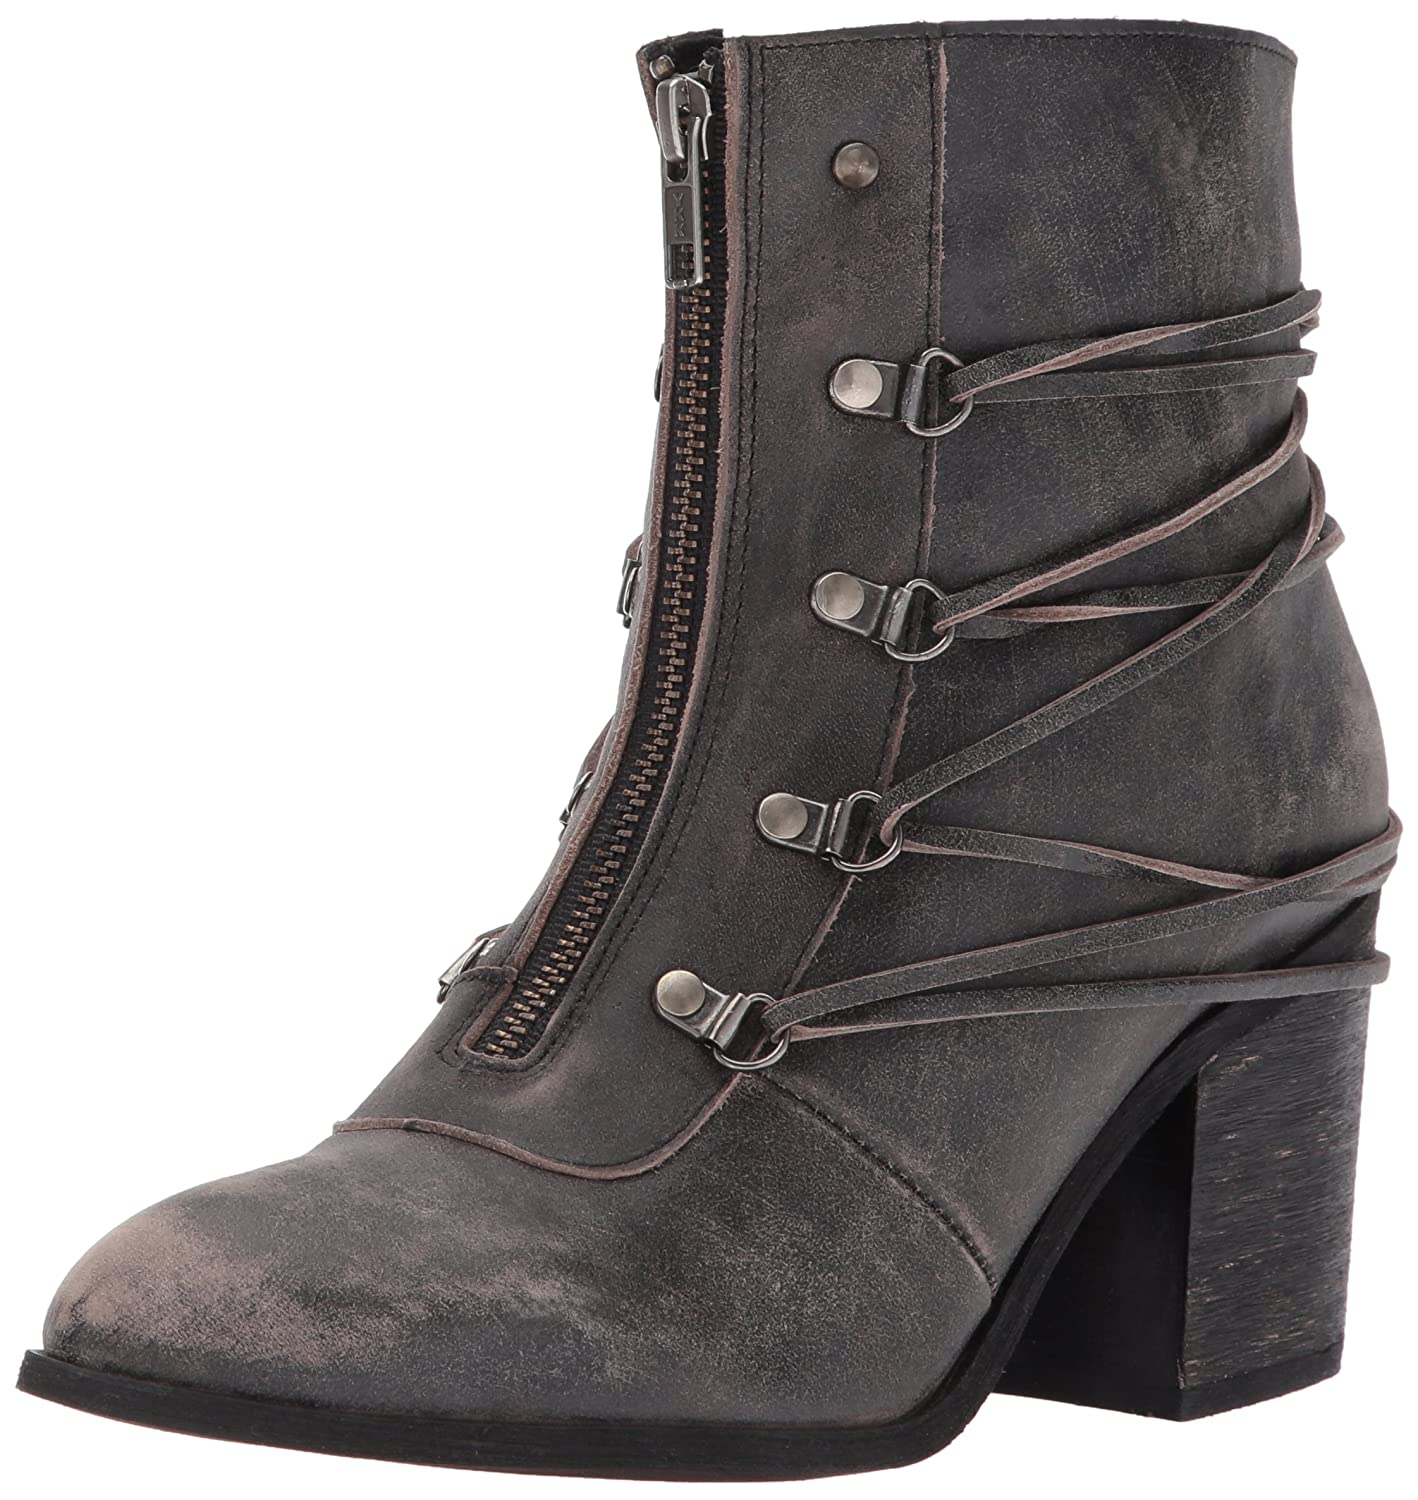 Sbicca Women's Peacekeeper Boot B06XFTSK8W 9 B(M) US|Black